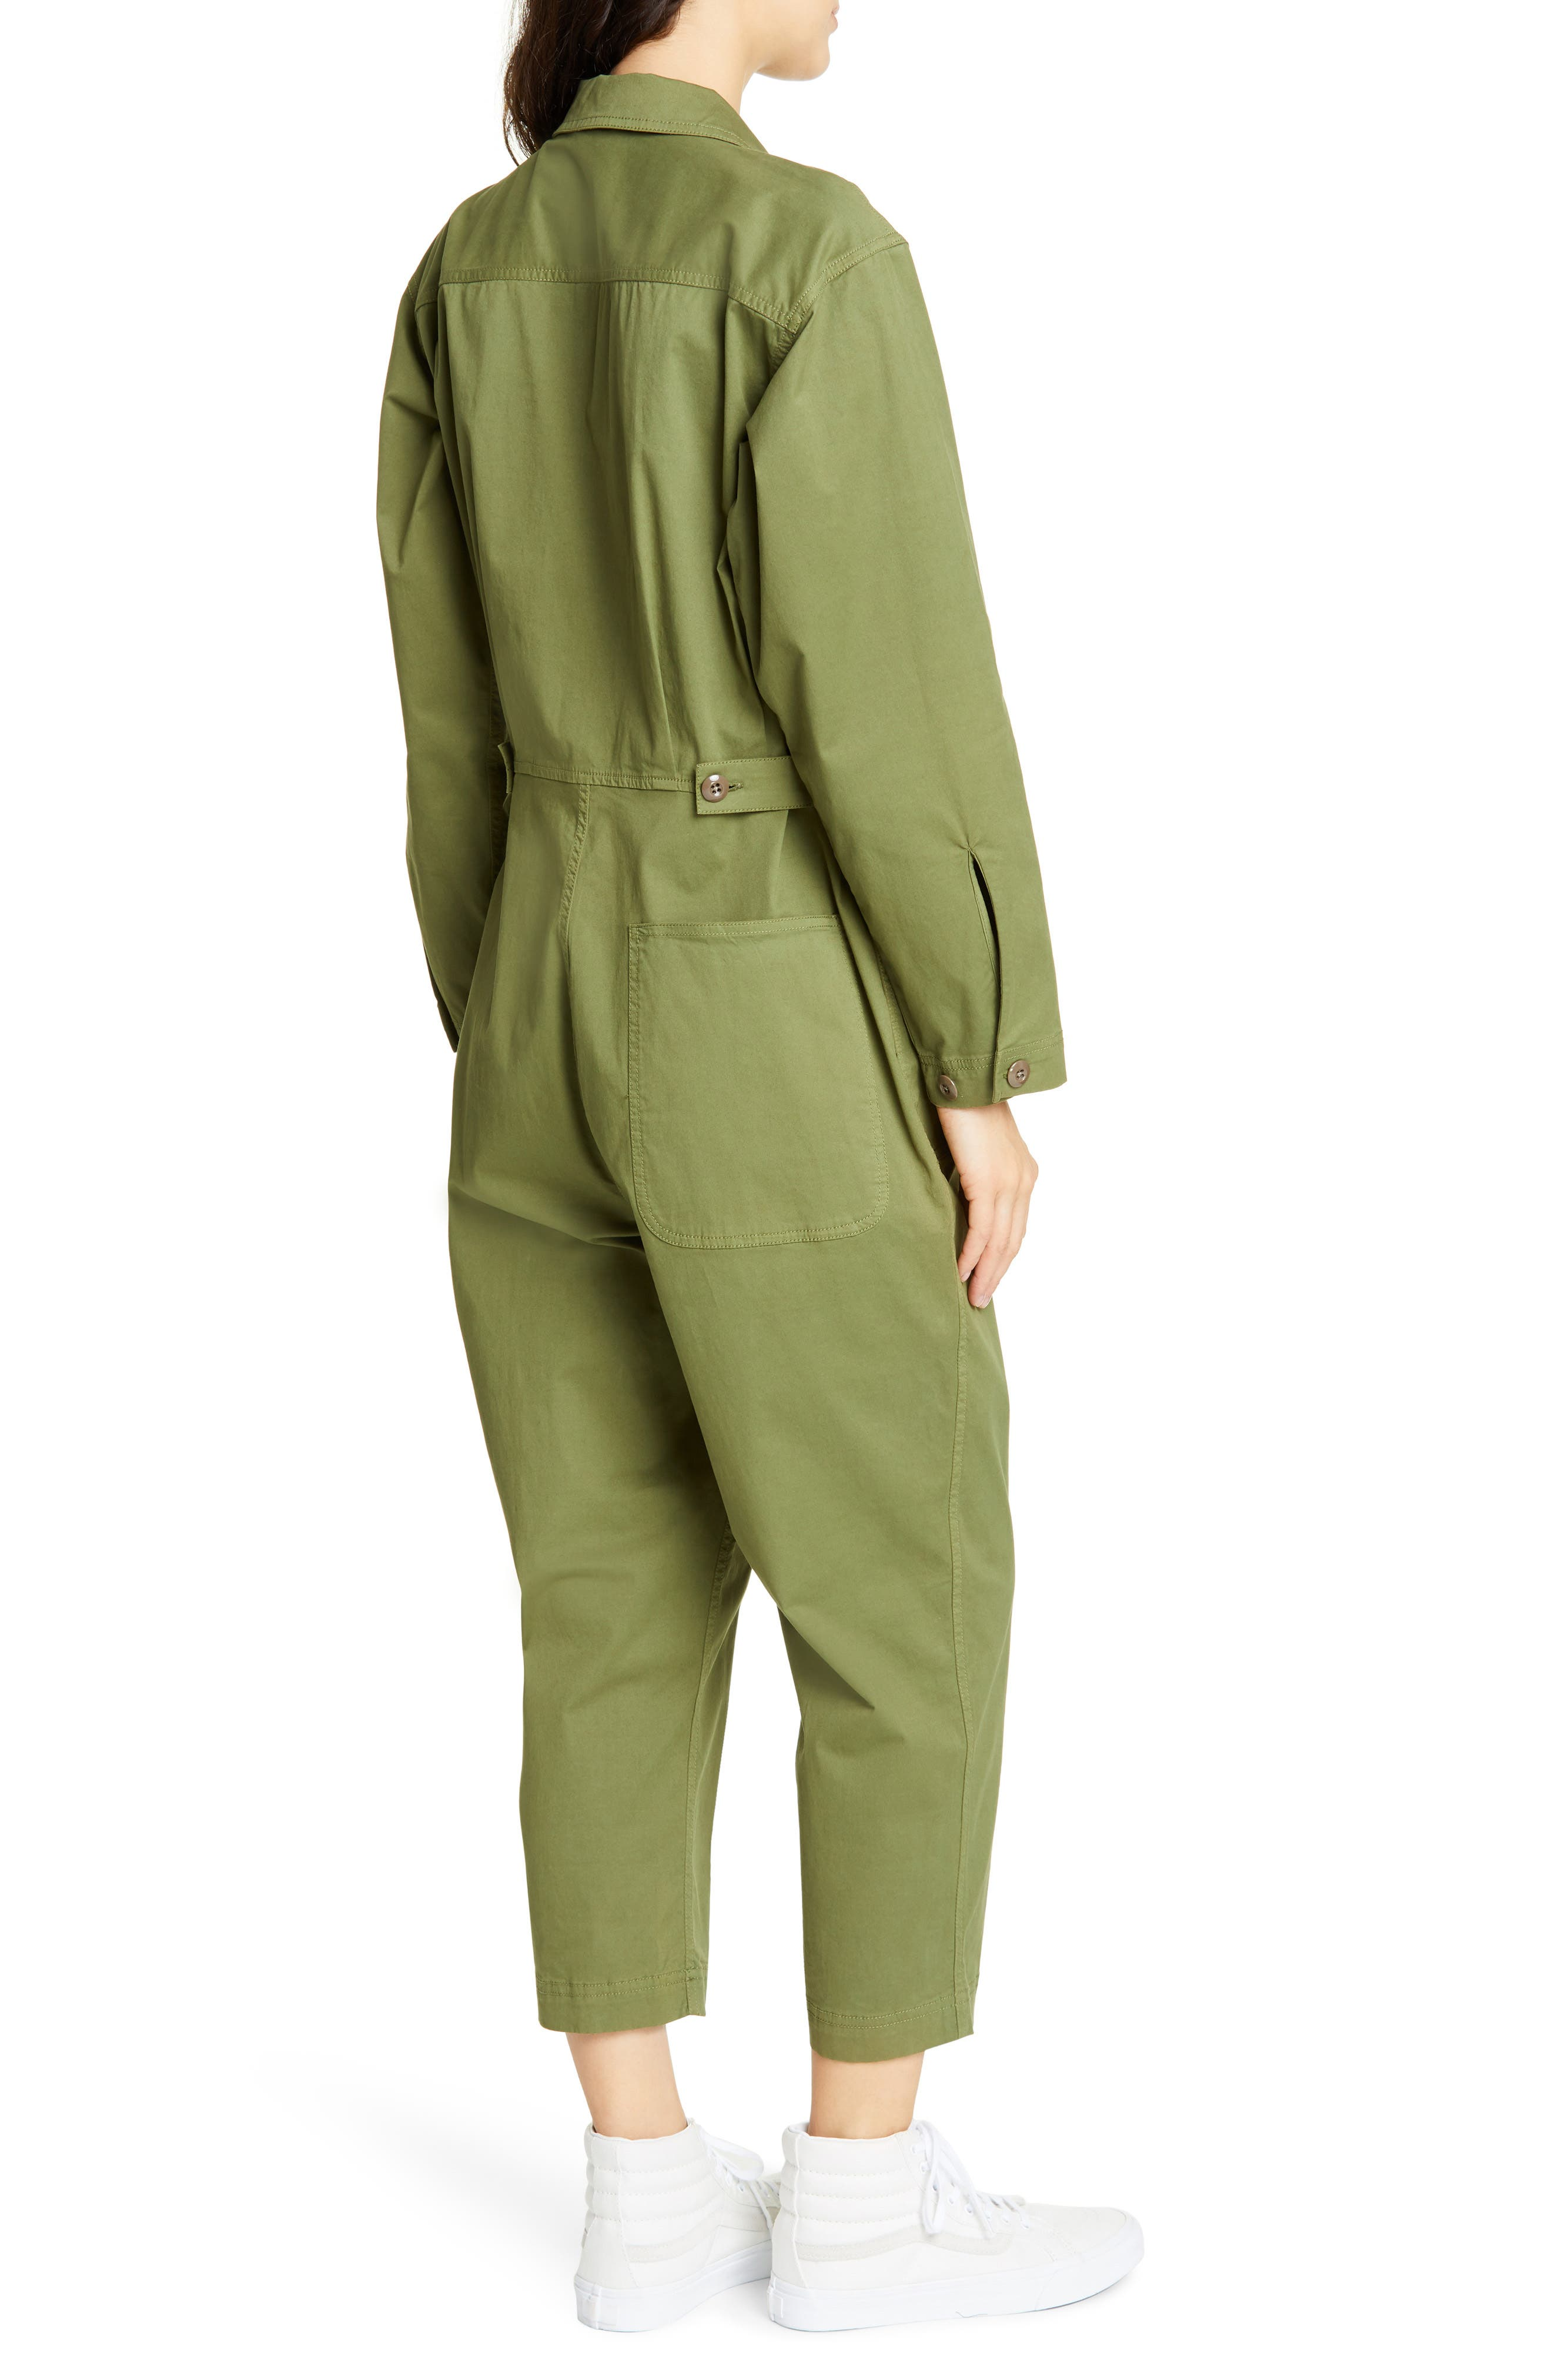 ALEX MILL, Stretch Cotton Jumpsuit, Alternate thumbnail 2, color, ARMY GREEN